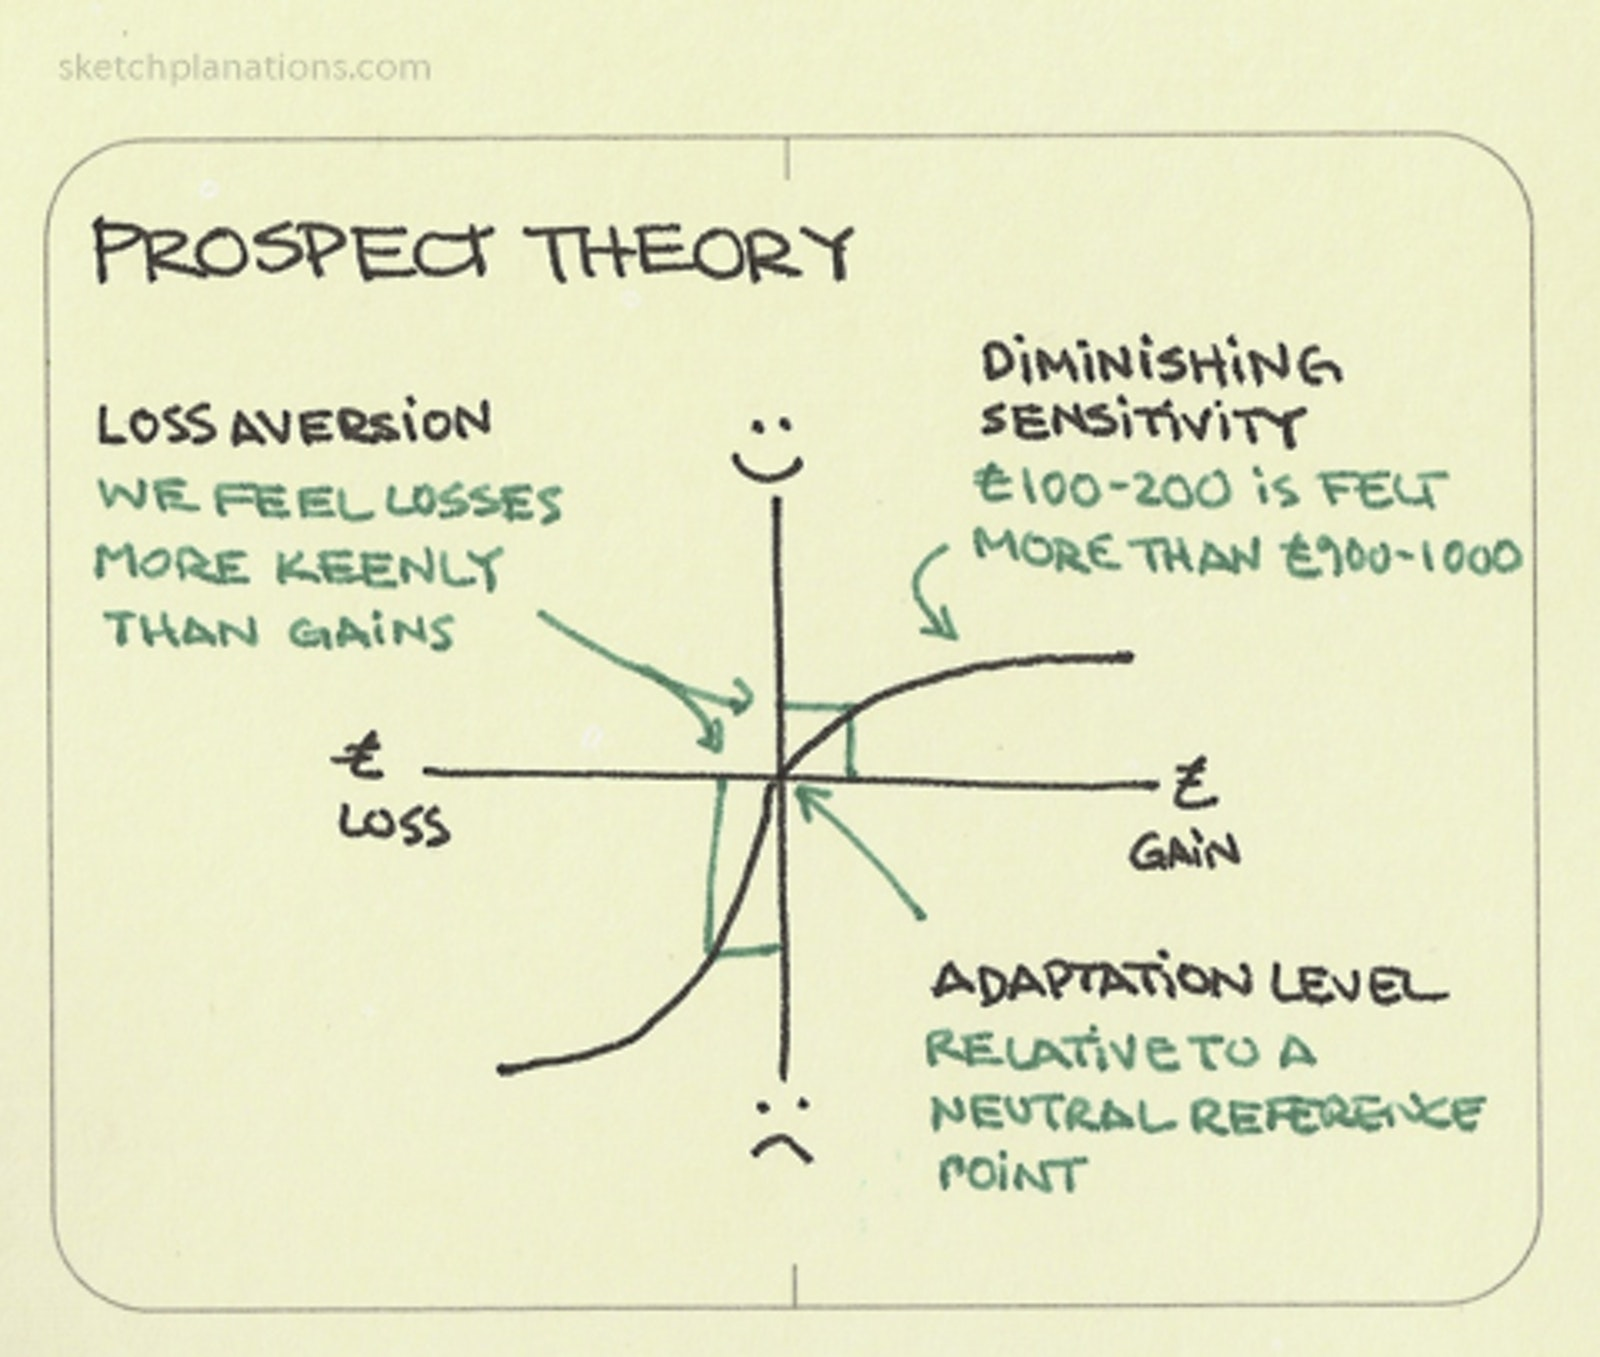 Prospect theory - Sketchplanations